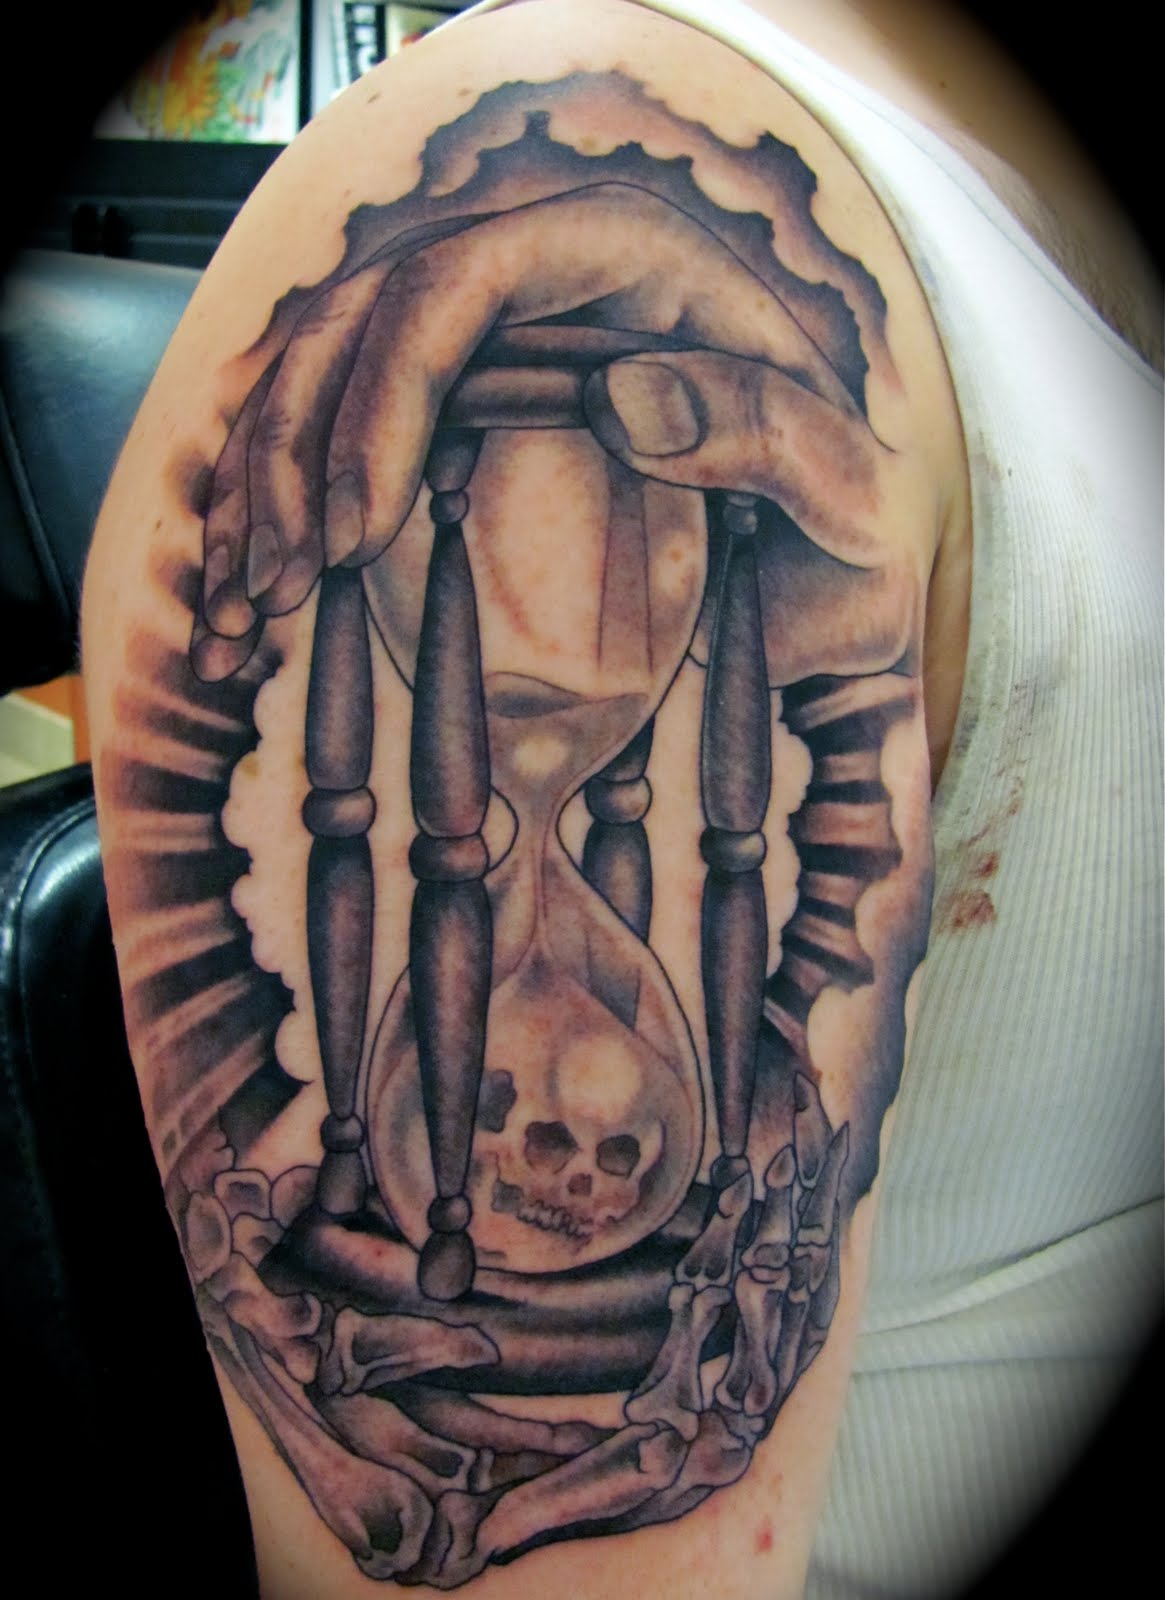 Best hourglass tattoo cool colorful ideas